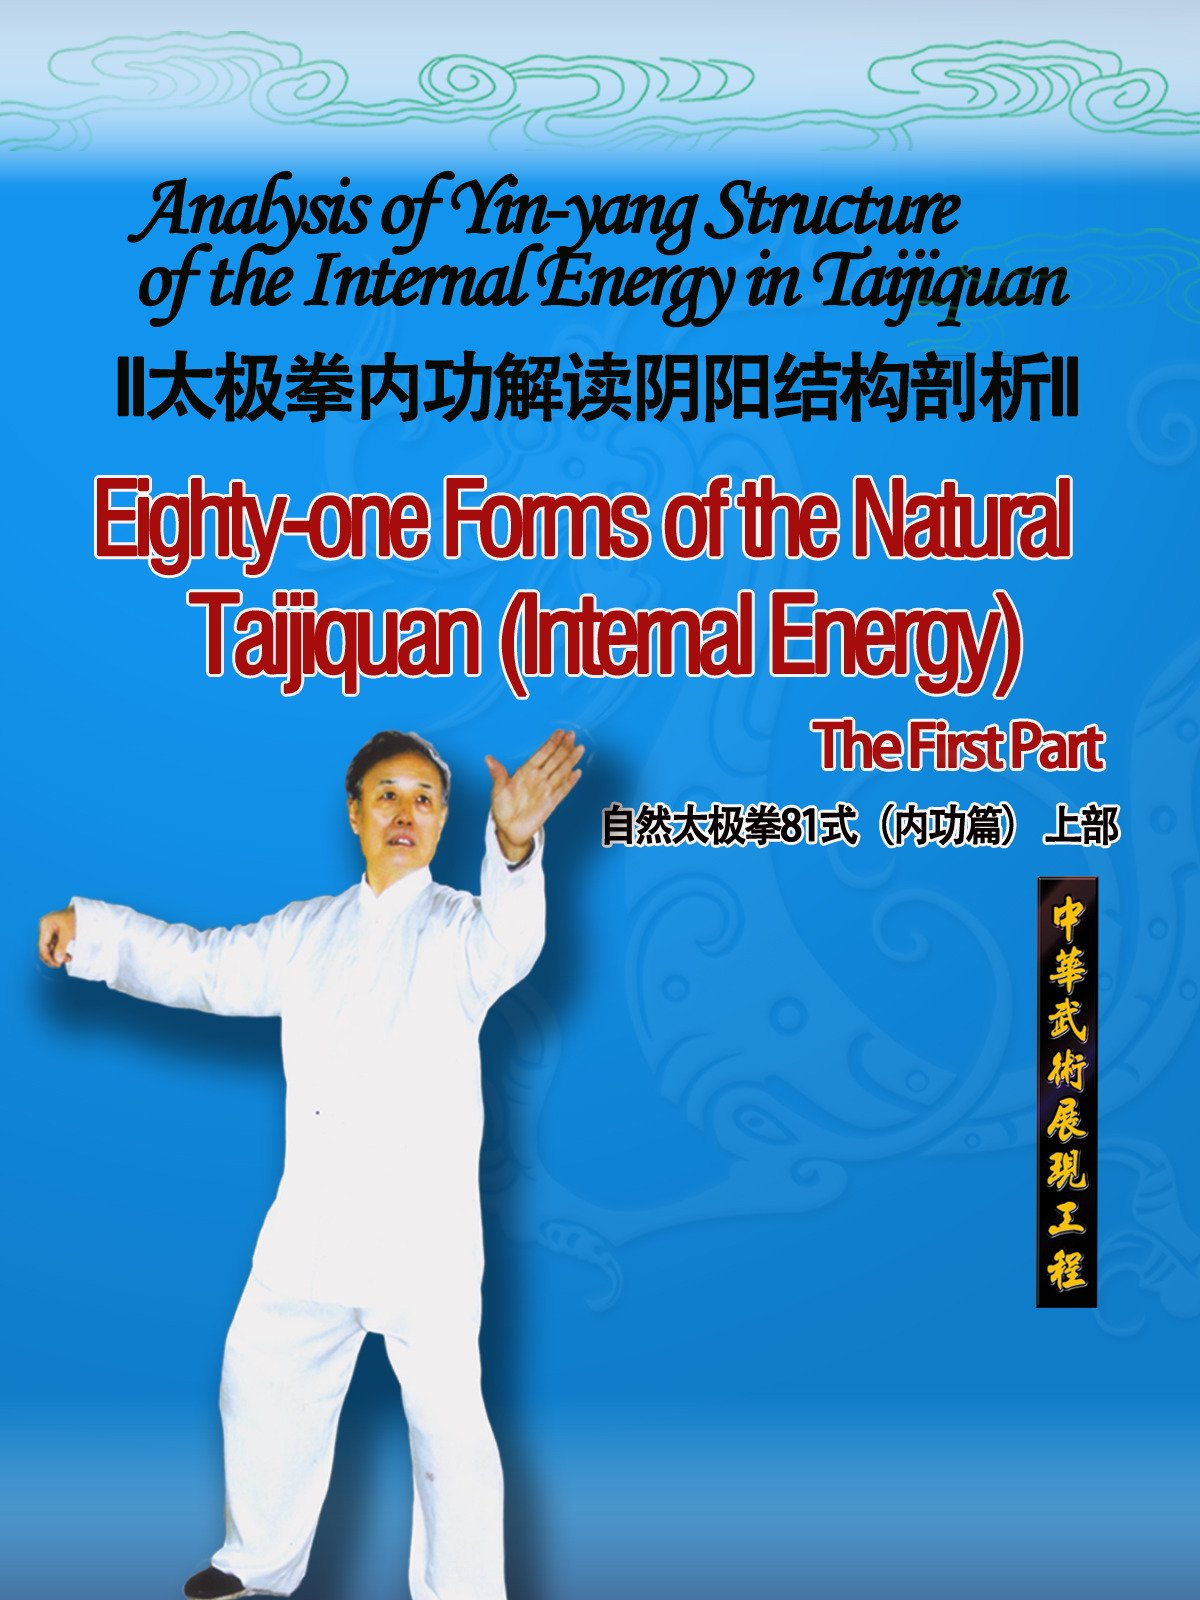 Analysis of Yin-yang Structure of the Internal Energy in Taijiquan-Eighty-one Forms of the Natural Taijiquan (Internal Energy) The First Part